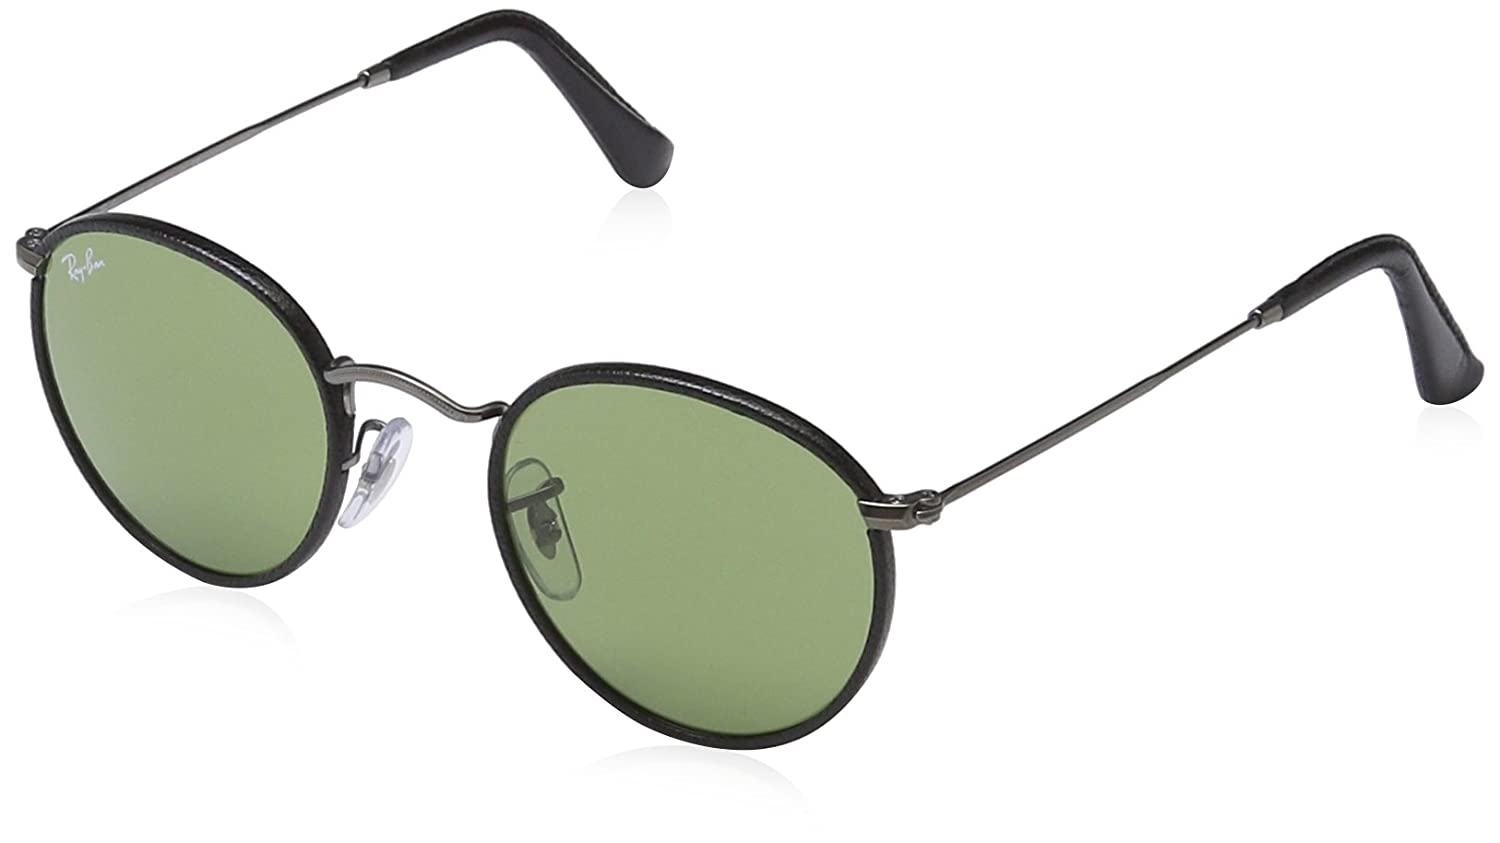 7bd17f9c5bd Ray-Ban Round Craft Black RB3475Q 029 14 47-21 Small  Amazon.co.uk  Clothing